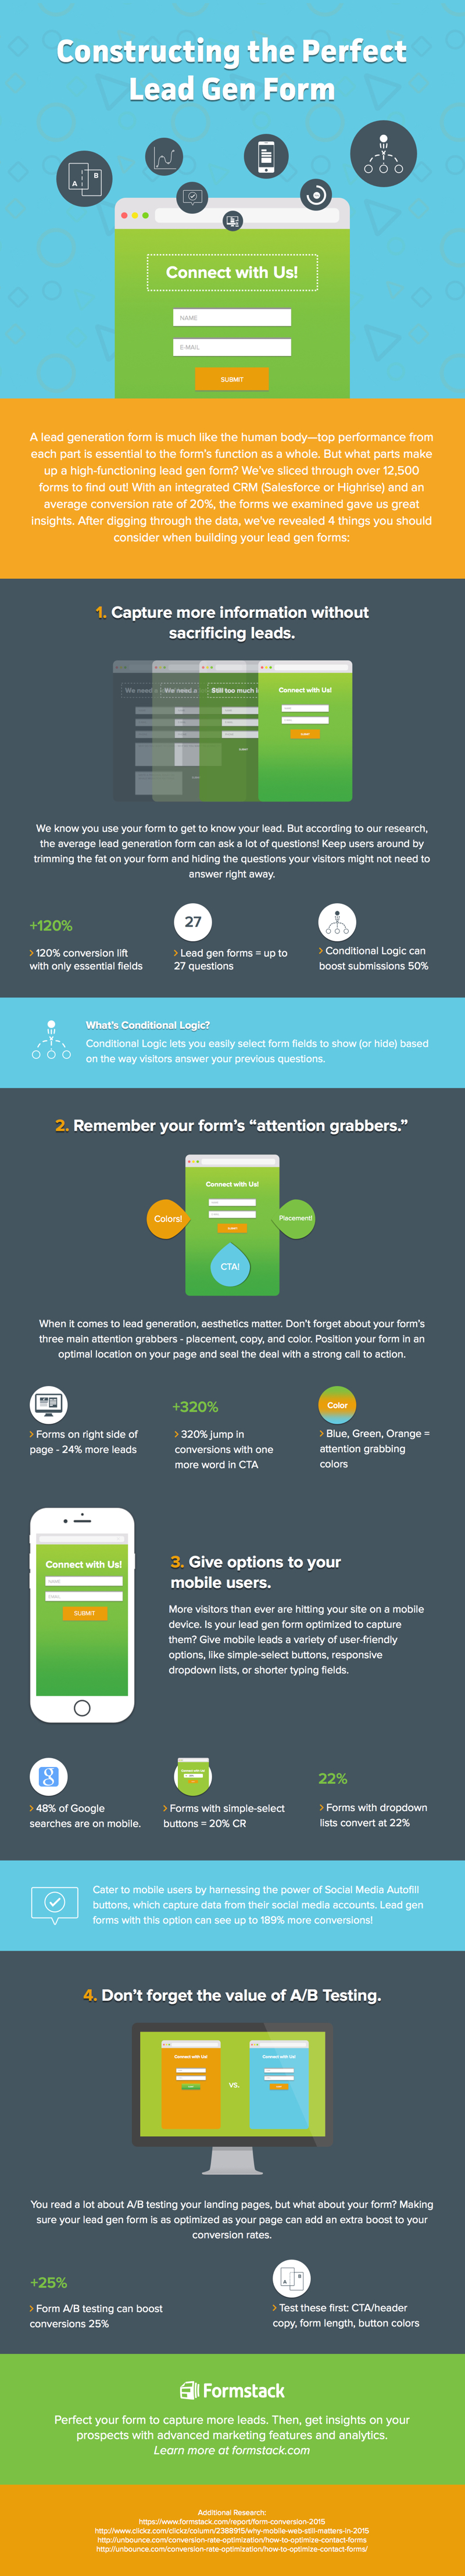 Constructing the Perfect Lead Gen Form